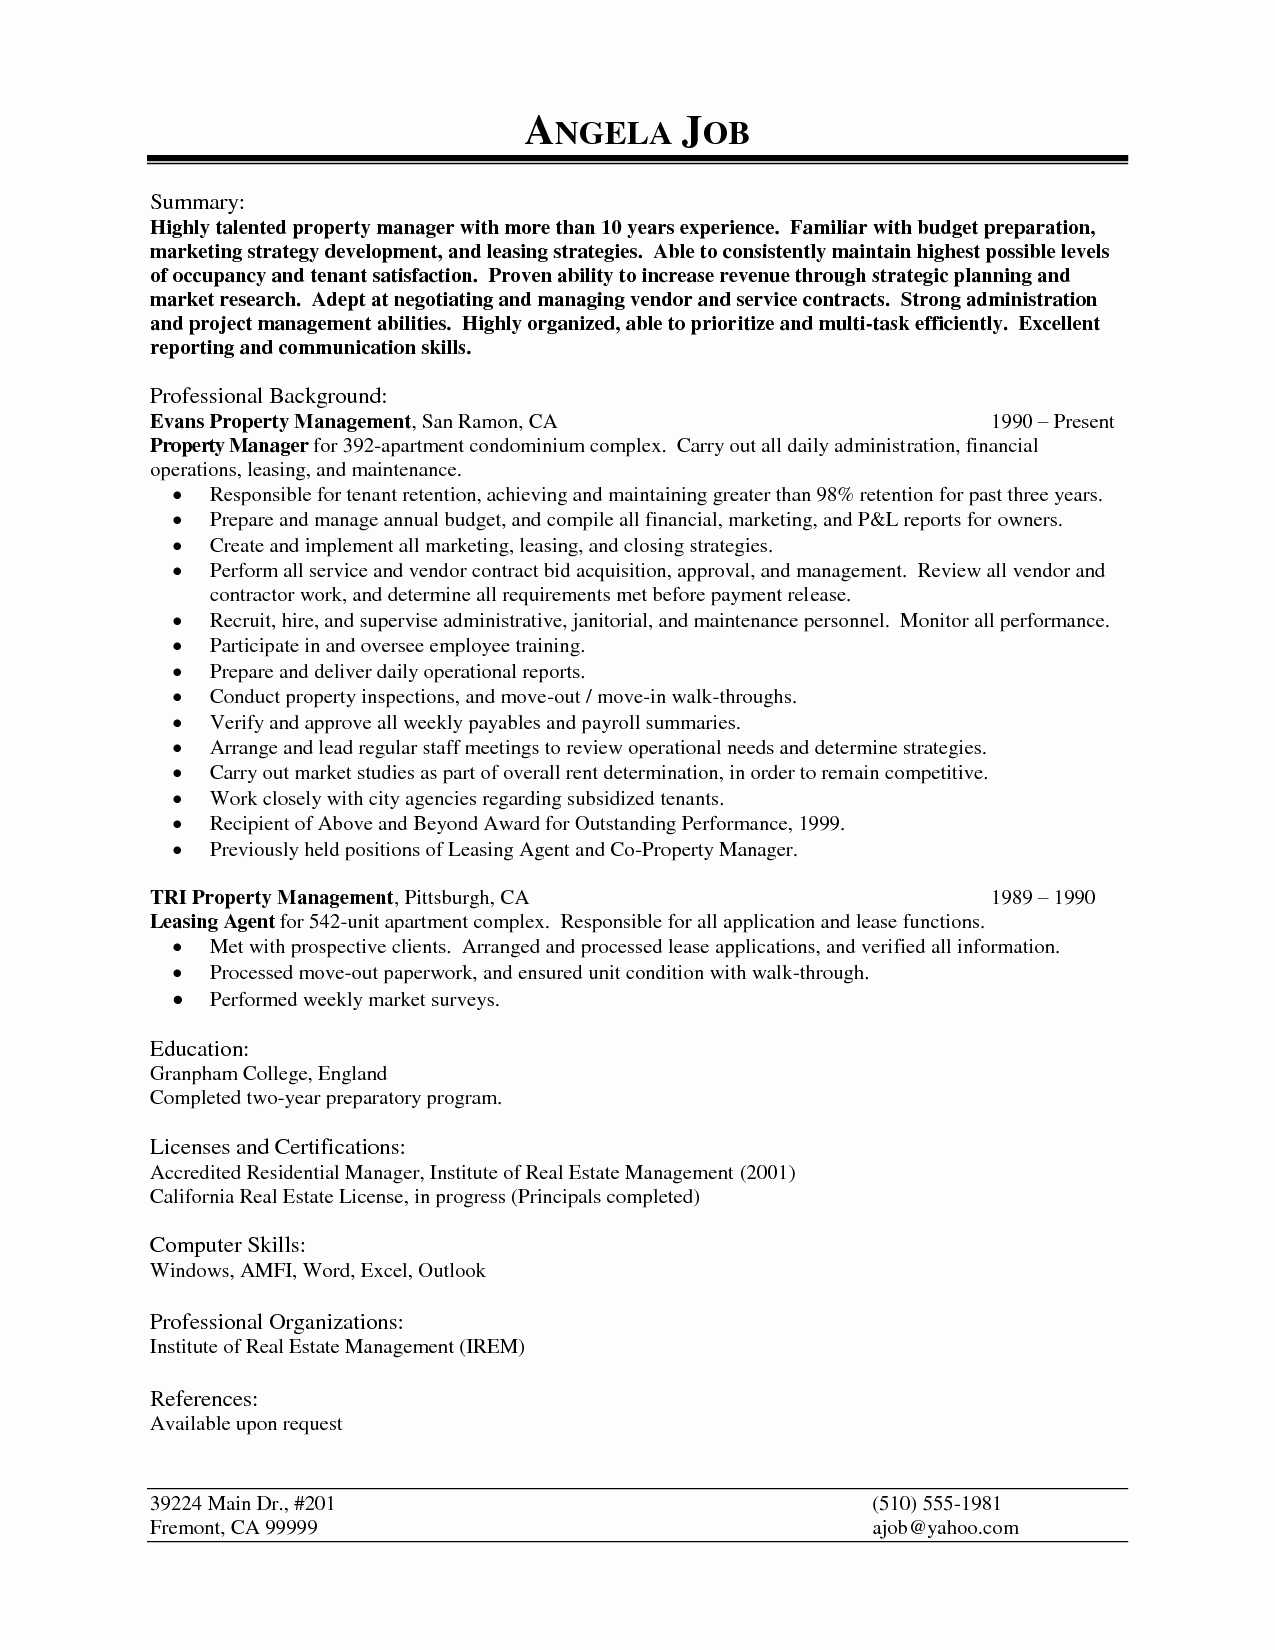 Property Manager Resume Template - Property Management Job Description for Resume Inspirational Resume